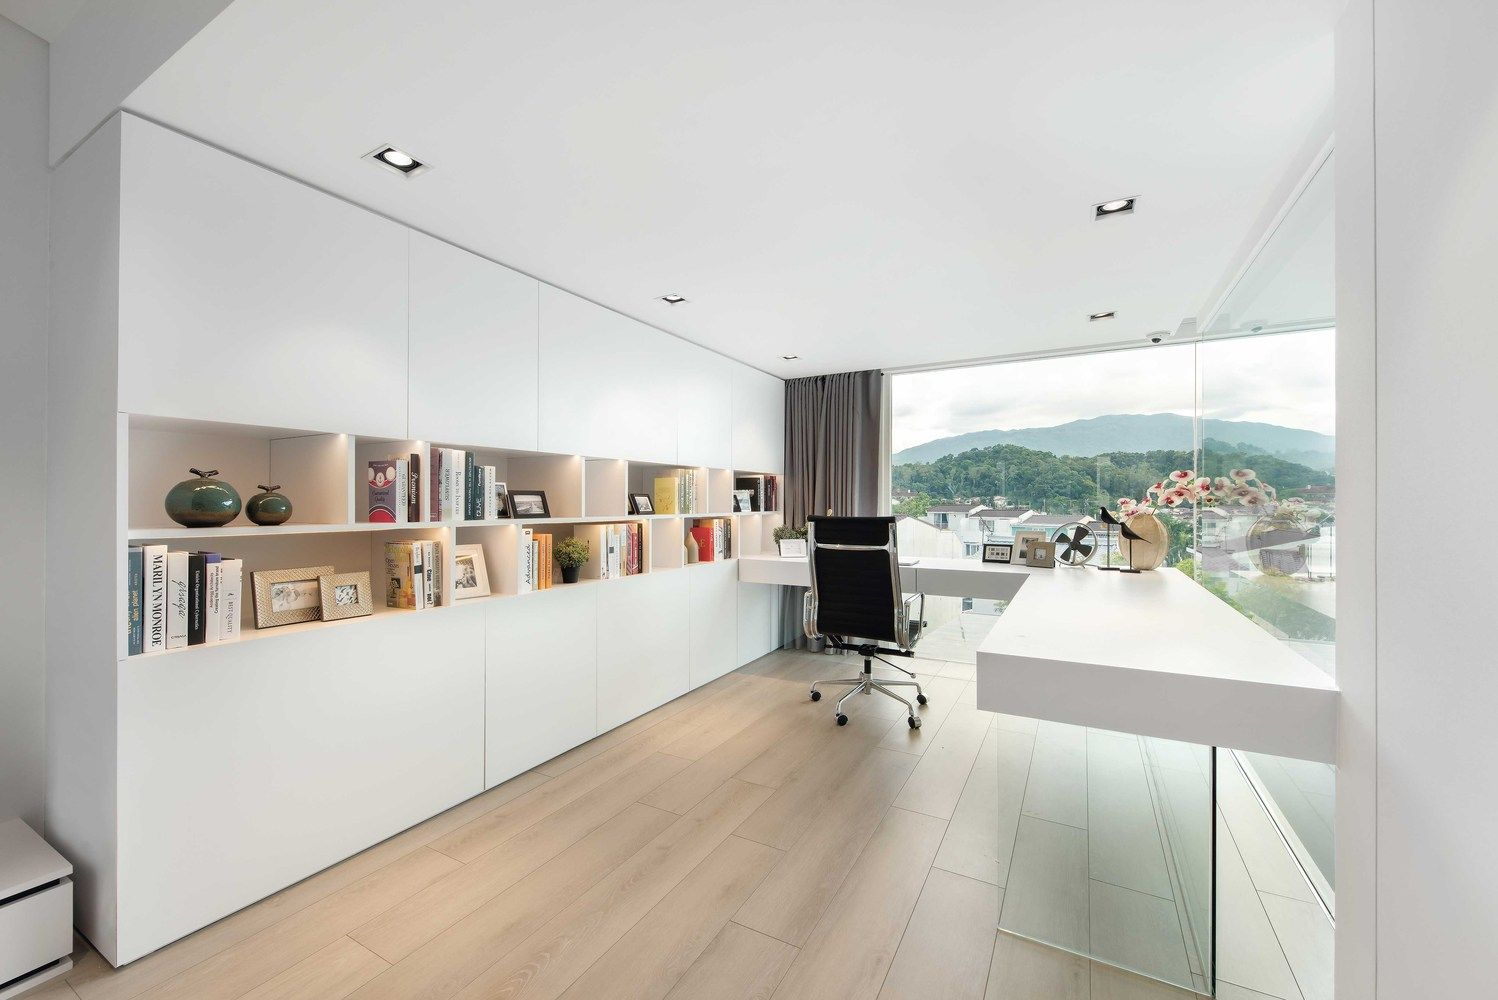 Gallery of House in Hong Kong / Millimeter Interior Design ... on japan modern house design, mexico modern house design, kenya modern house design, pinoy modern house design, chinese modern house design, city modern house design,